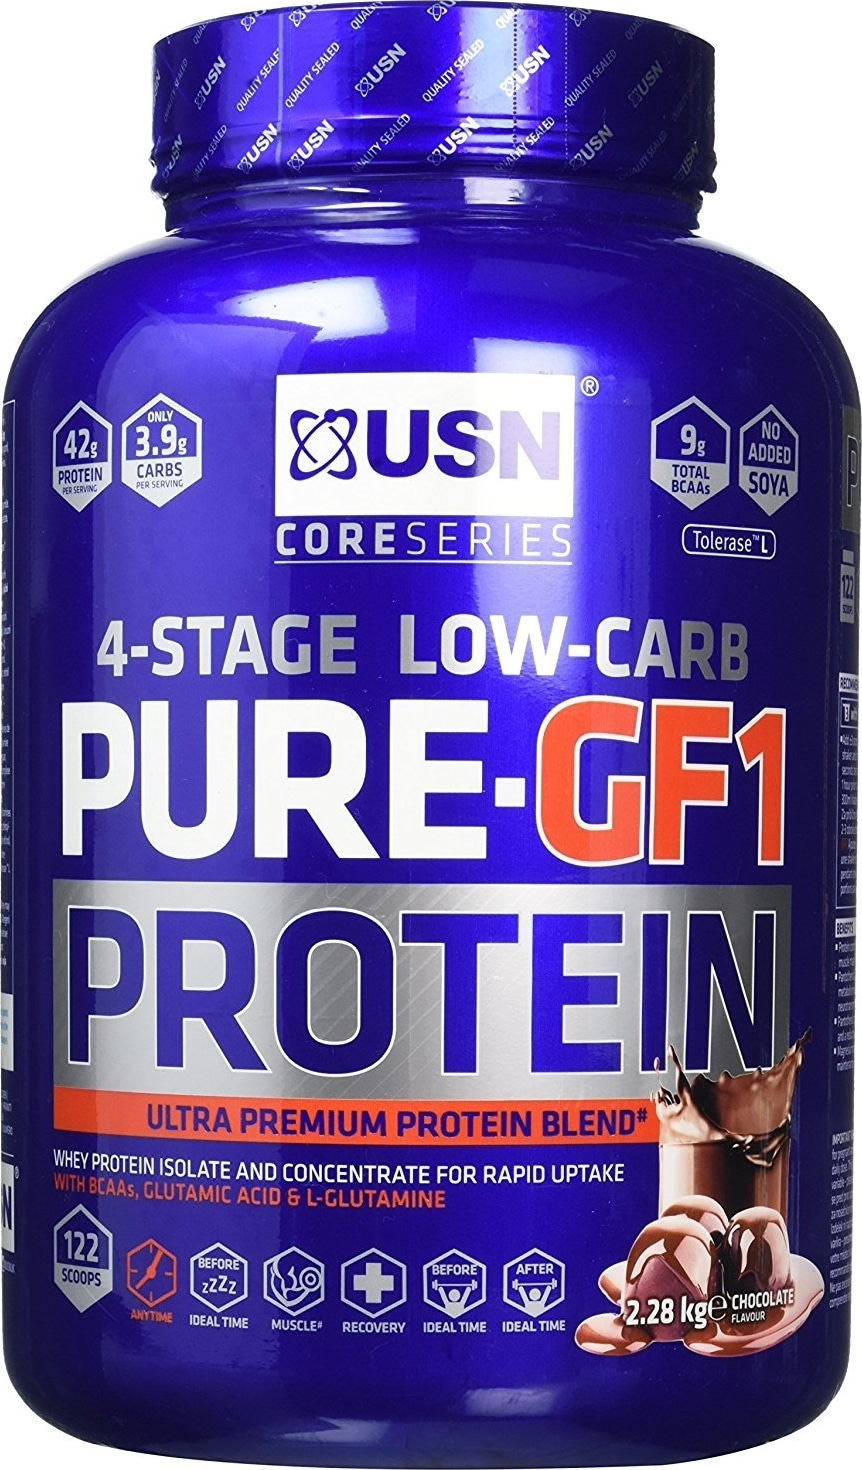 Protéines USN Pure GF1 Protein